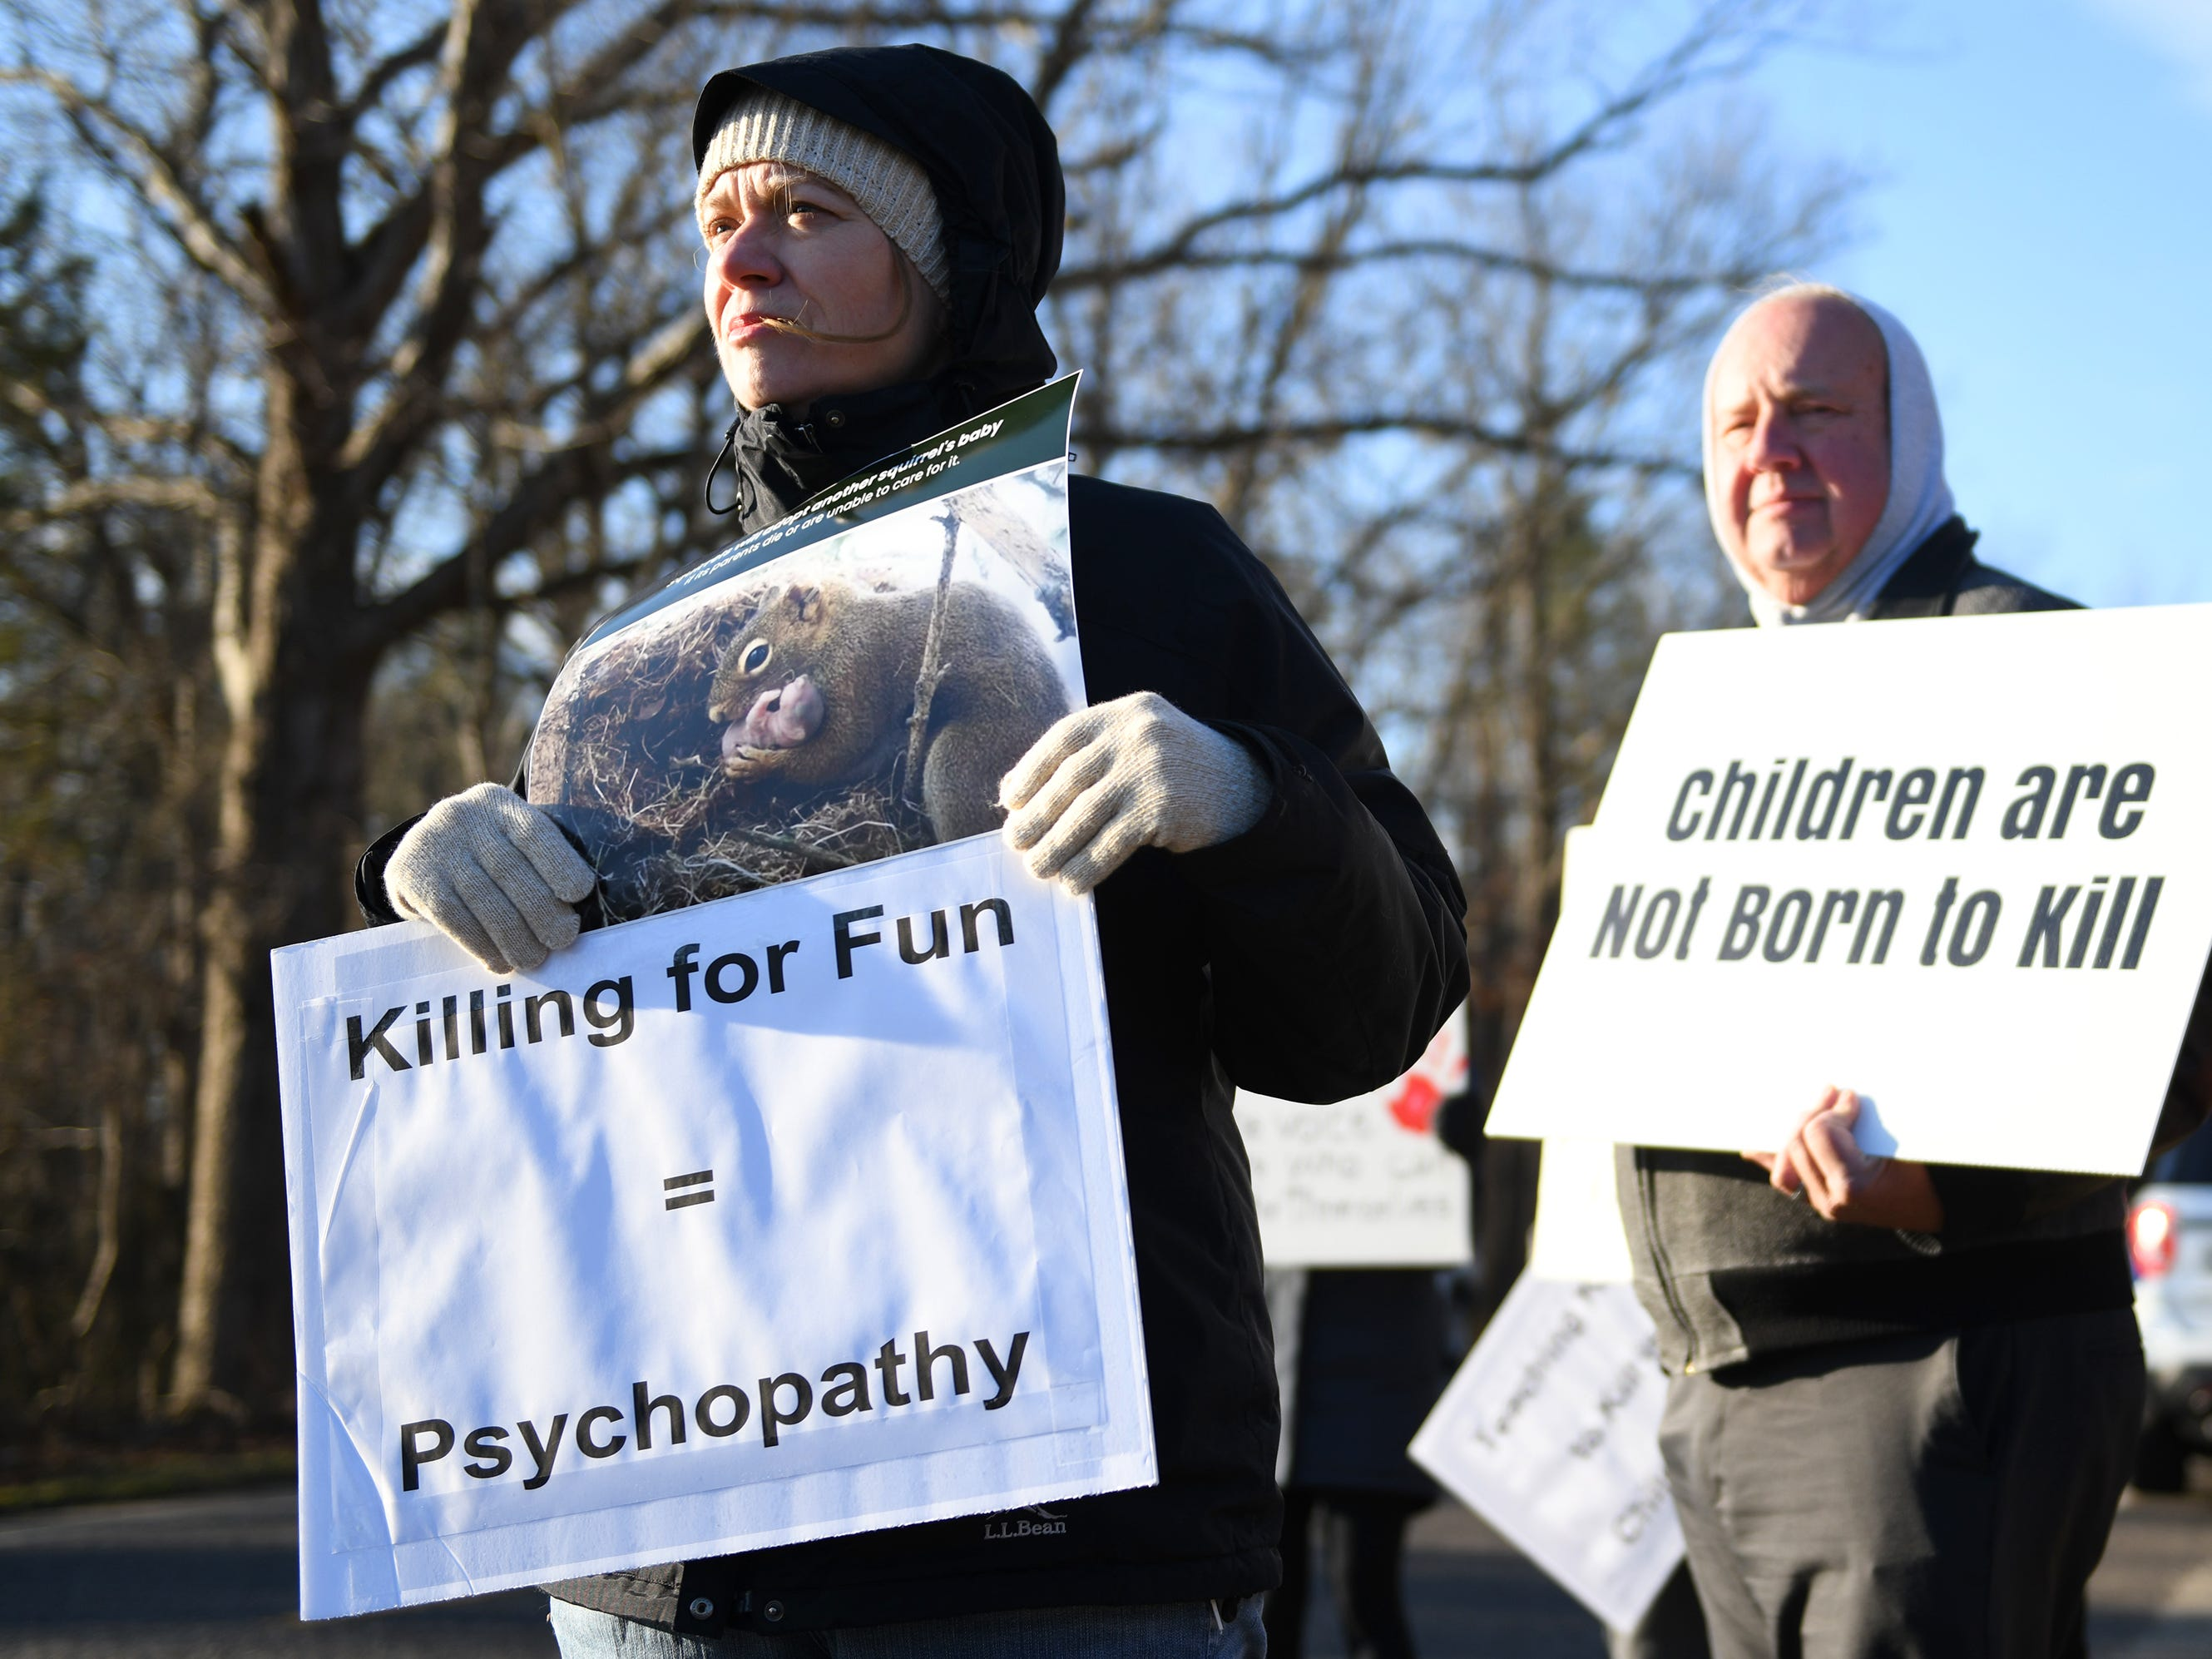 Animal rights activists protest the First Annual Family Squirrel Classic hosted by the Inskip Antler Hunting Club in Winslow Township on Saturday, Feb. 16, 2019.